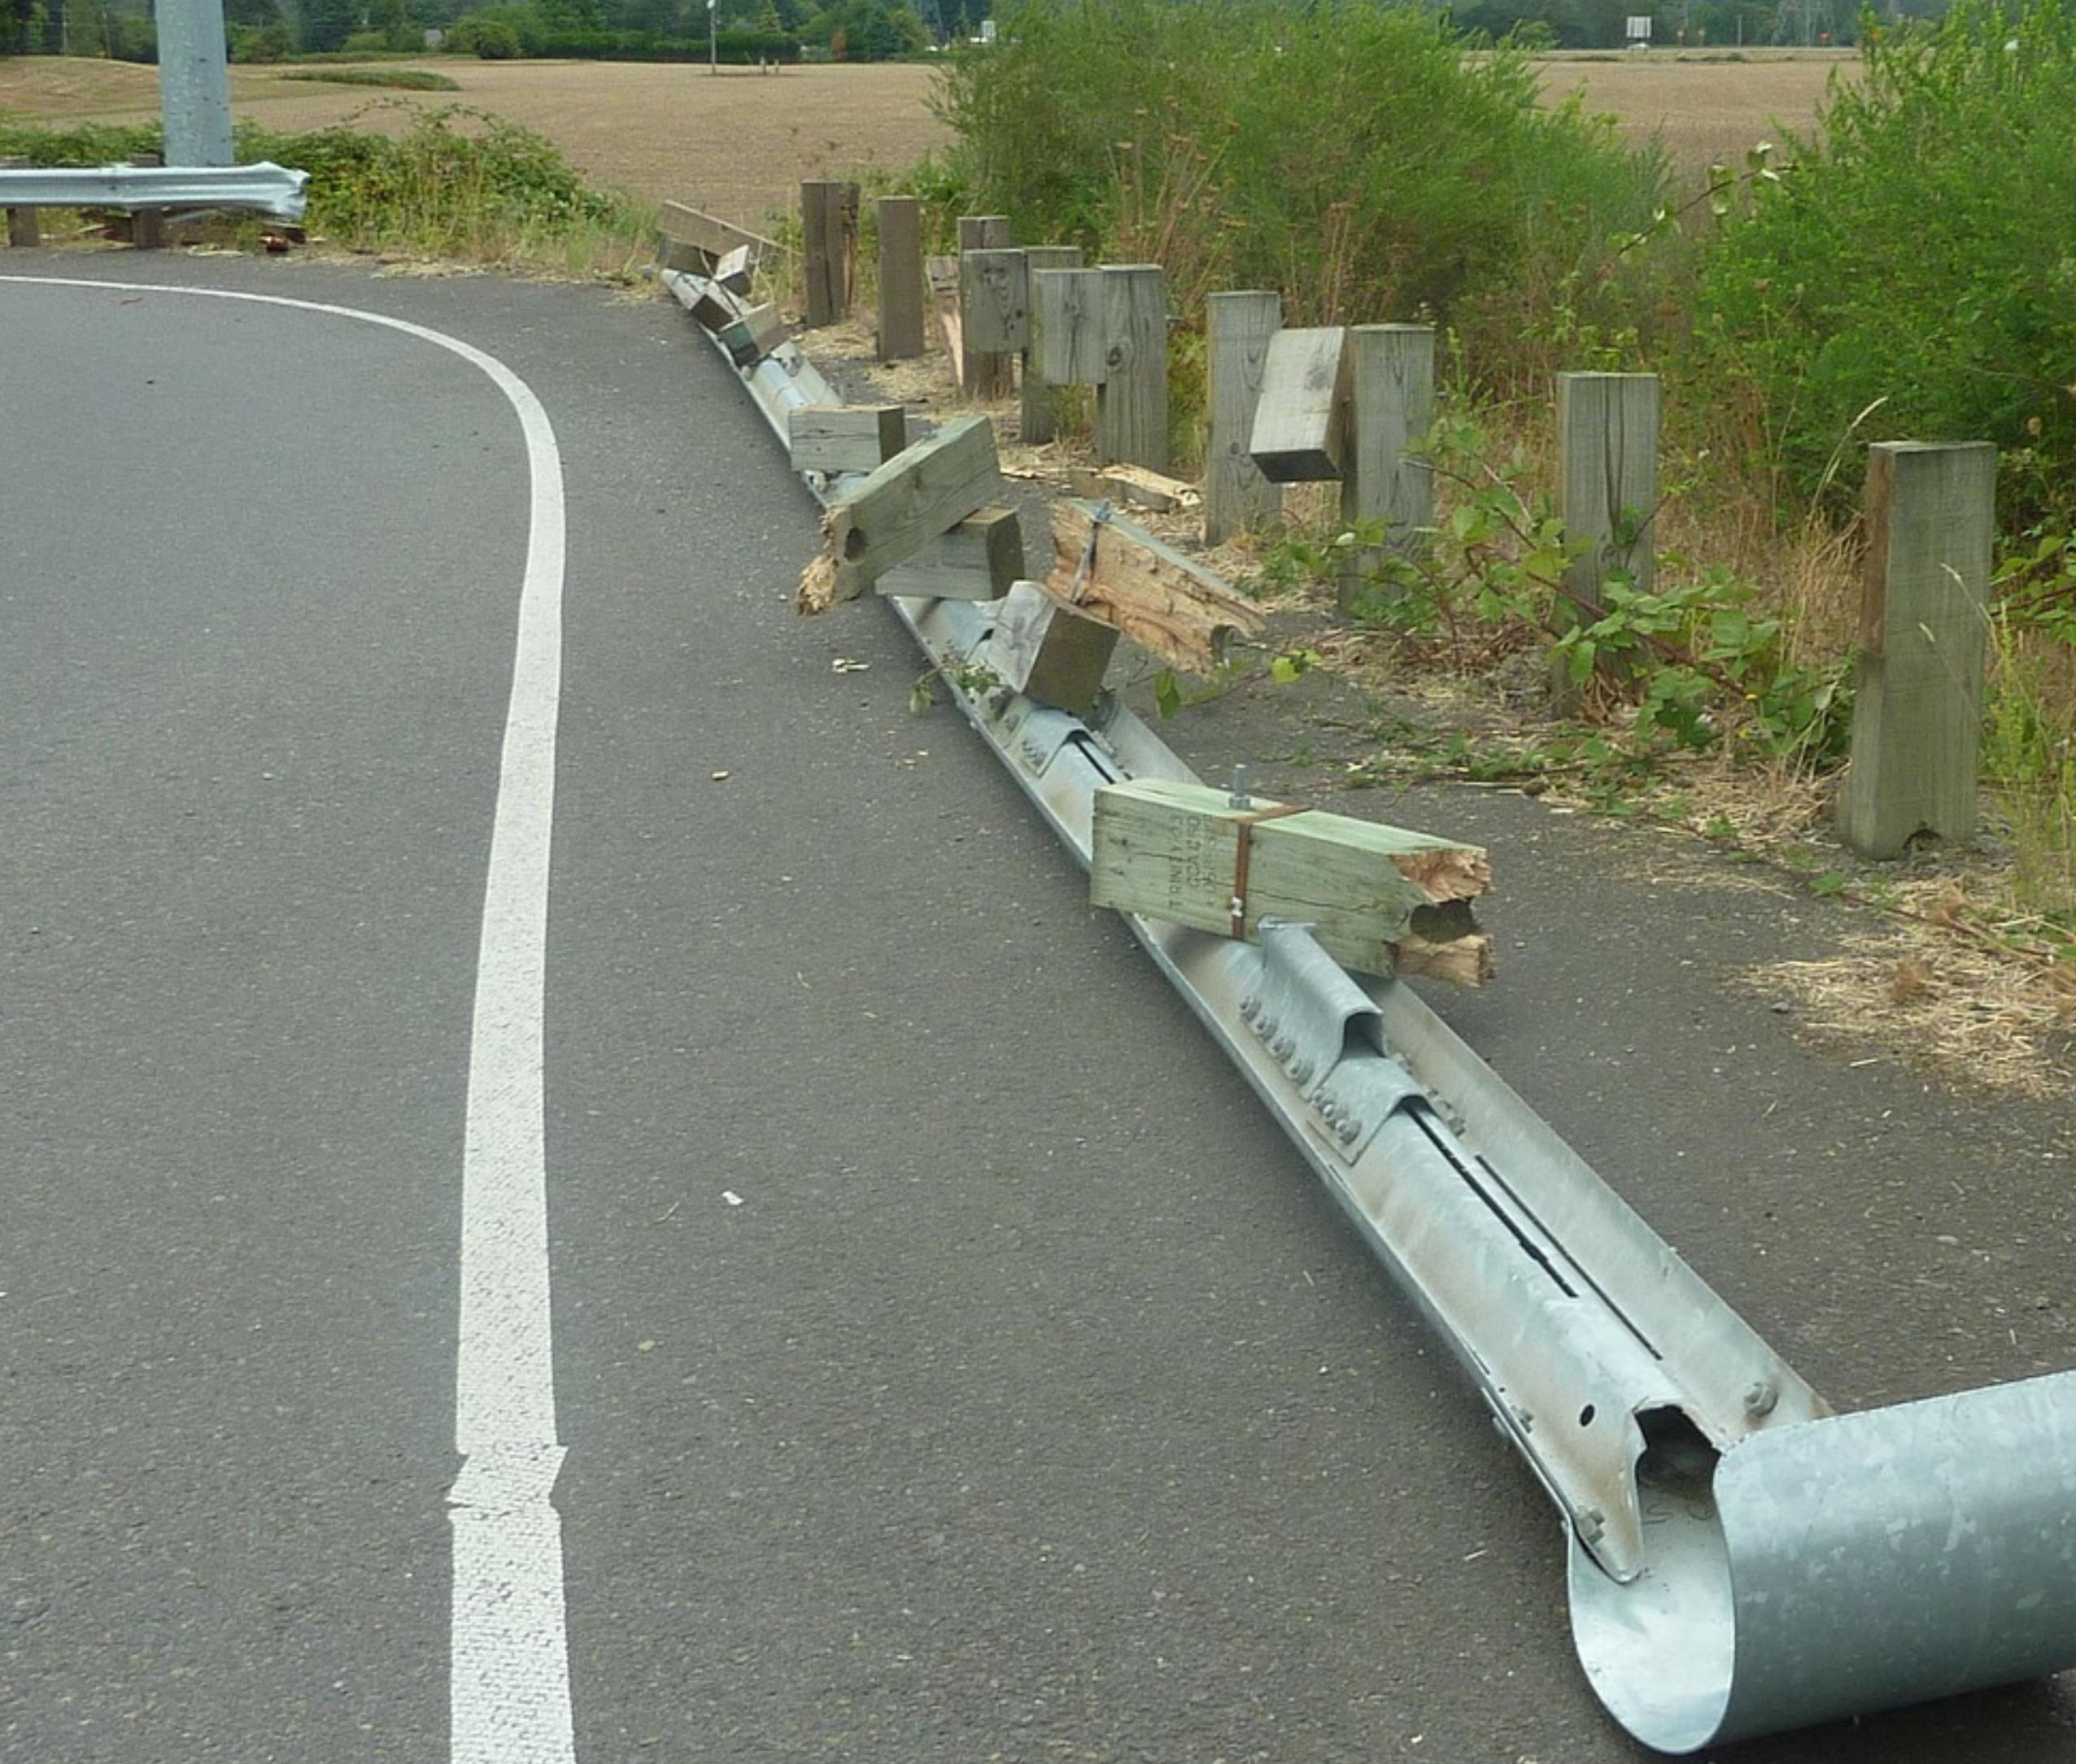 damaged guardrail on side of road after car accident